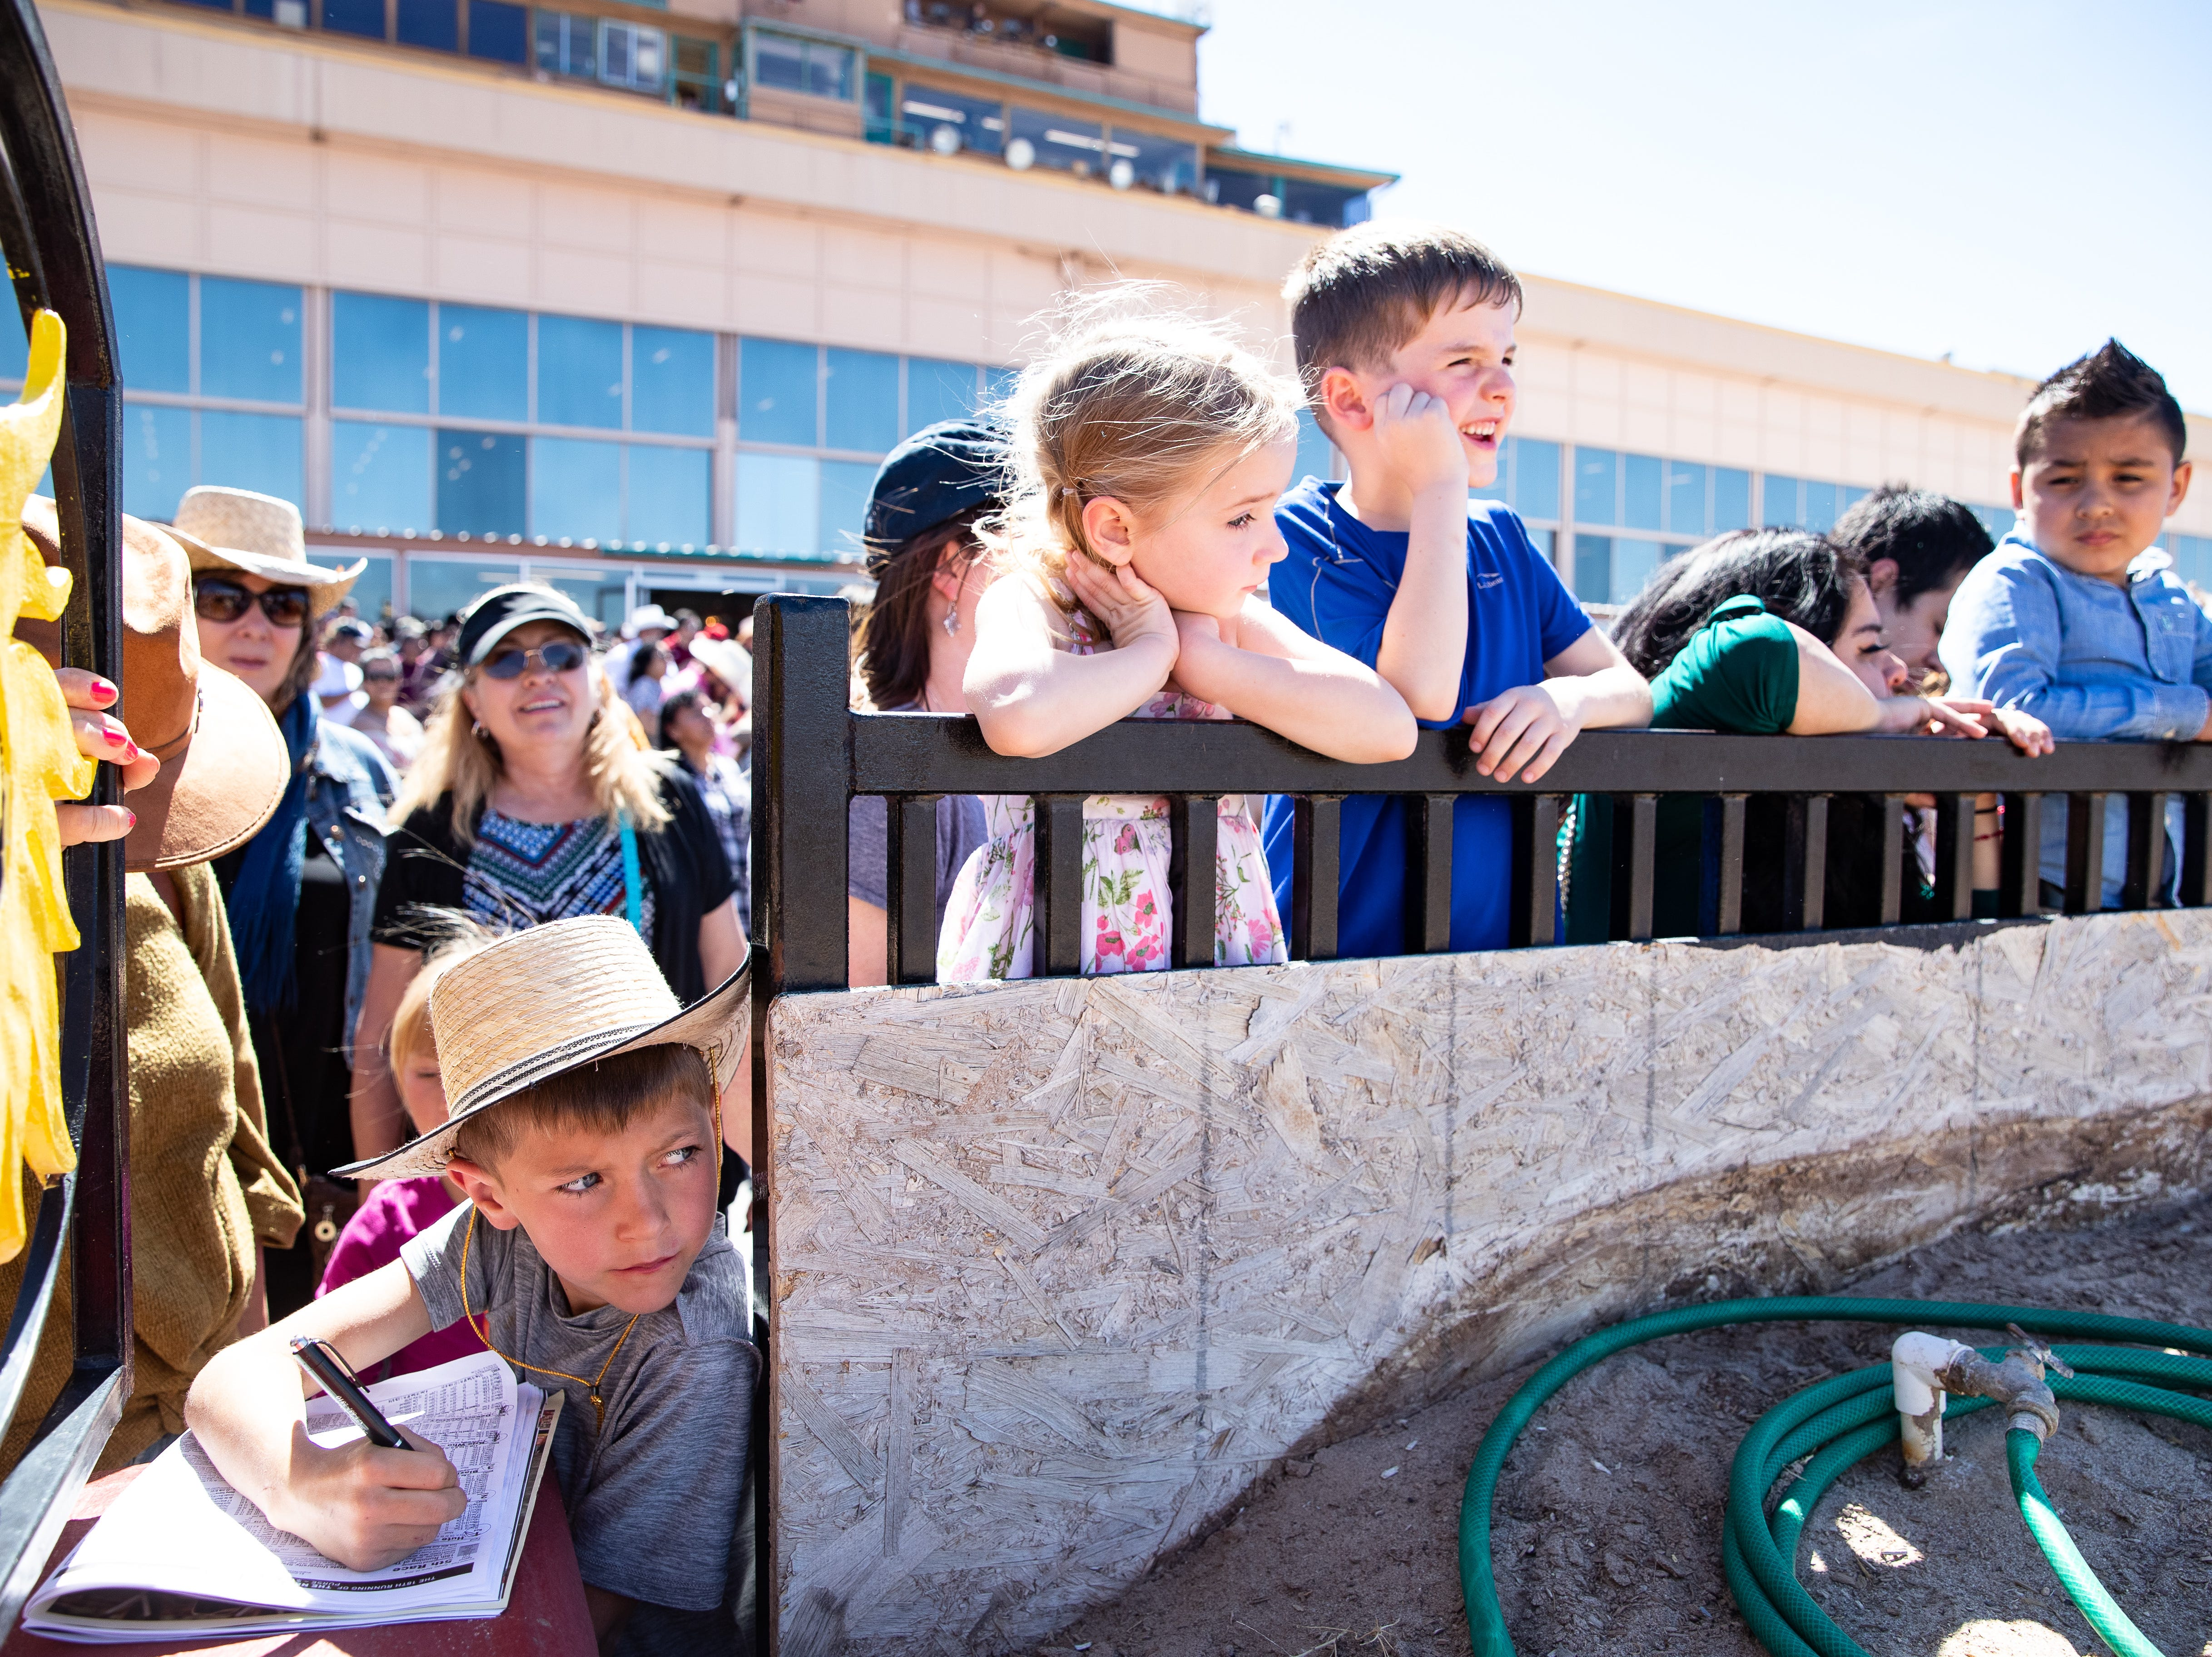 Early races at the Sunland Park Racetrack & Casino before the $200,000 purse Sunland Oaks and $800,000 purse Sunland Derby at the Sunland Park Racetrack & Casino in New Mexico on Sunday, March 24, 2019